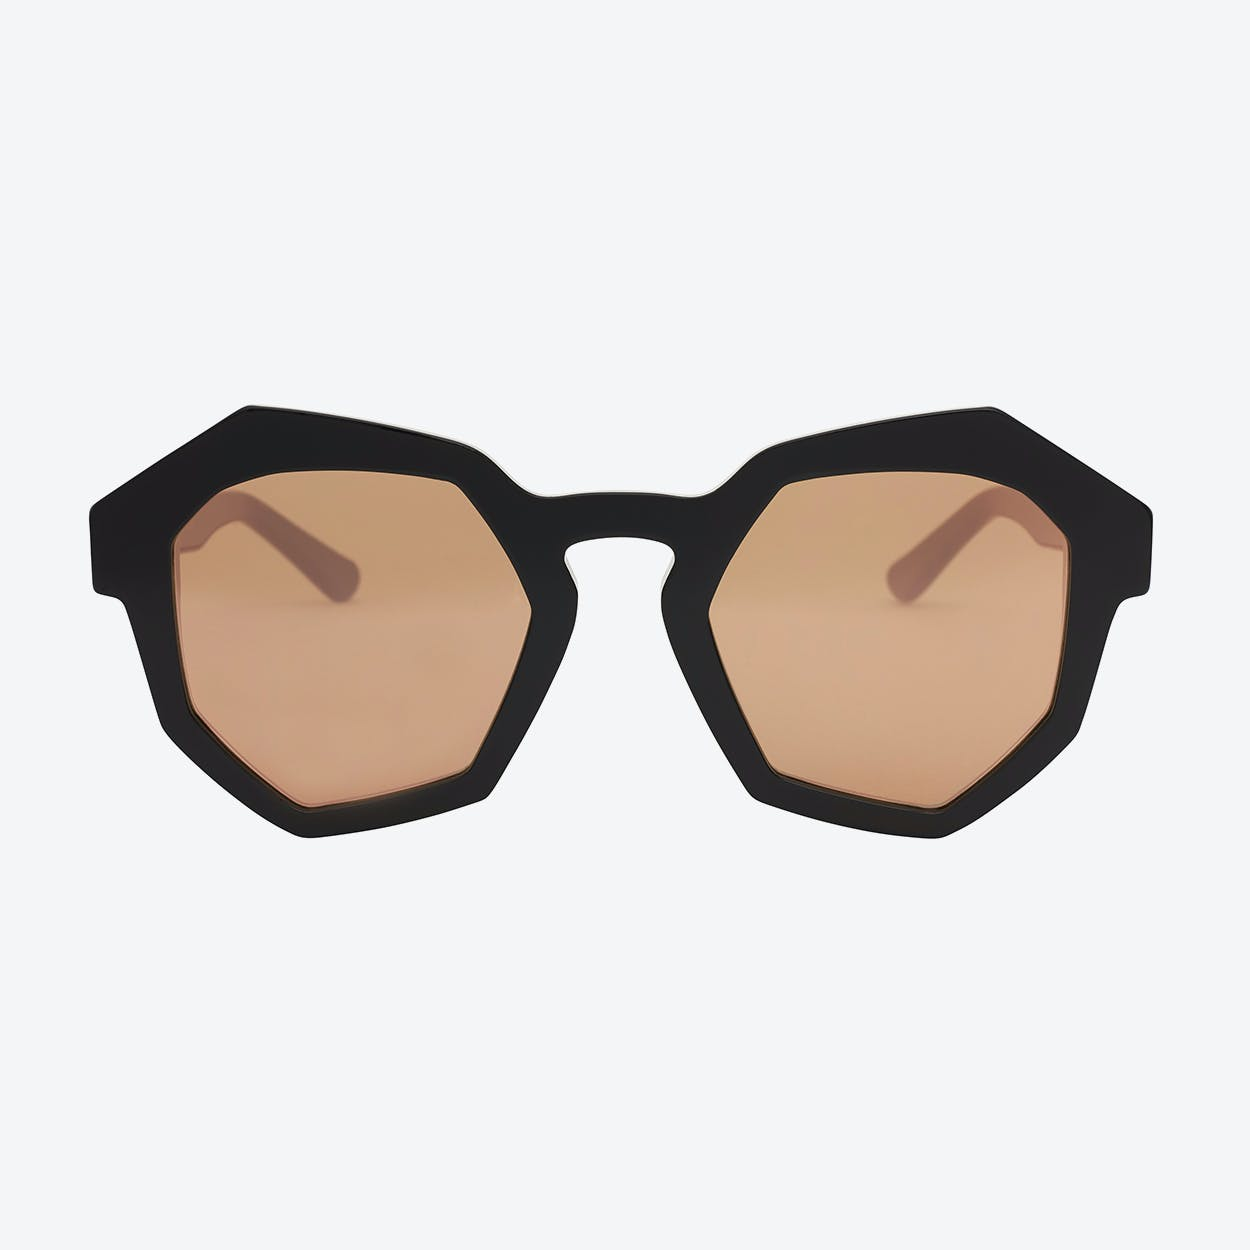 Hoxton Sunglasses in Black